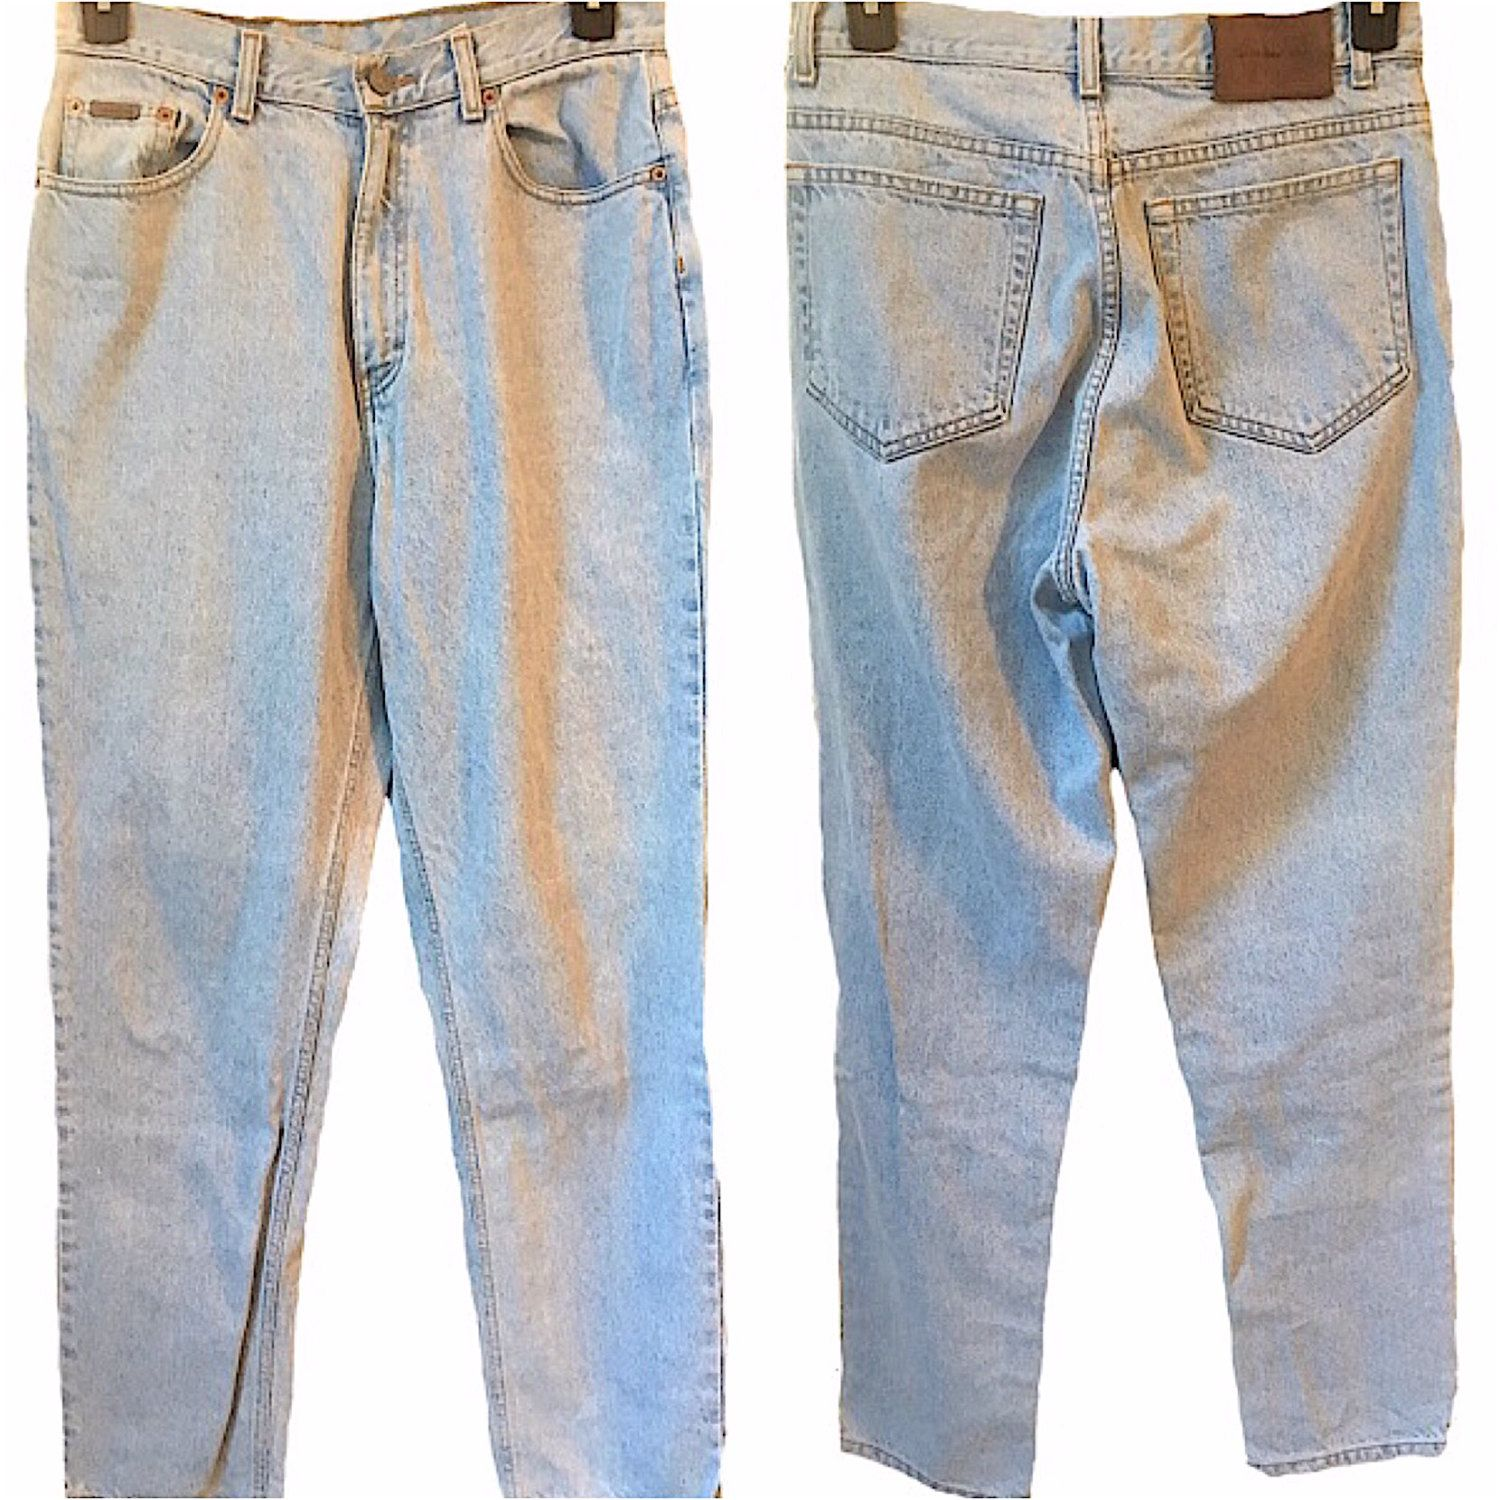 75559a1ad424bb Calvin Klein vintage jeans mens womens classic fit light wash back leather  tag high waisted or hips CK denim cotton vintage size 14 rad sale by ...